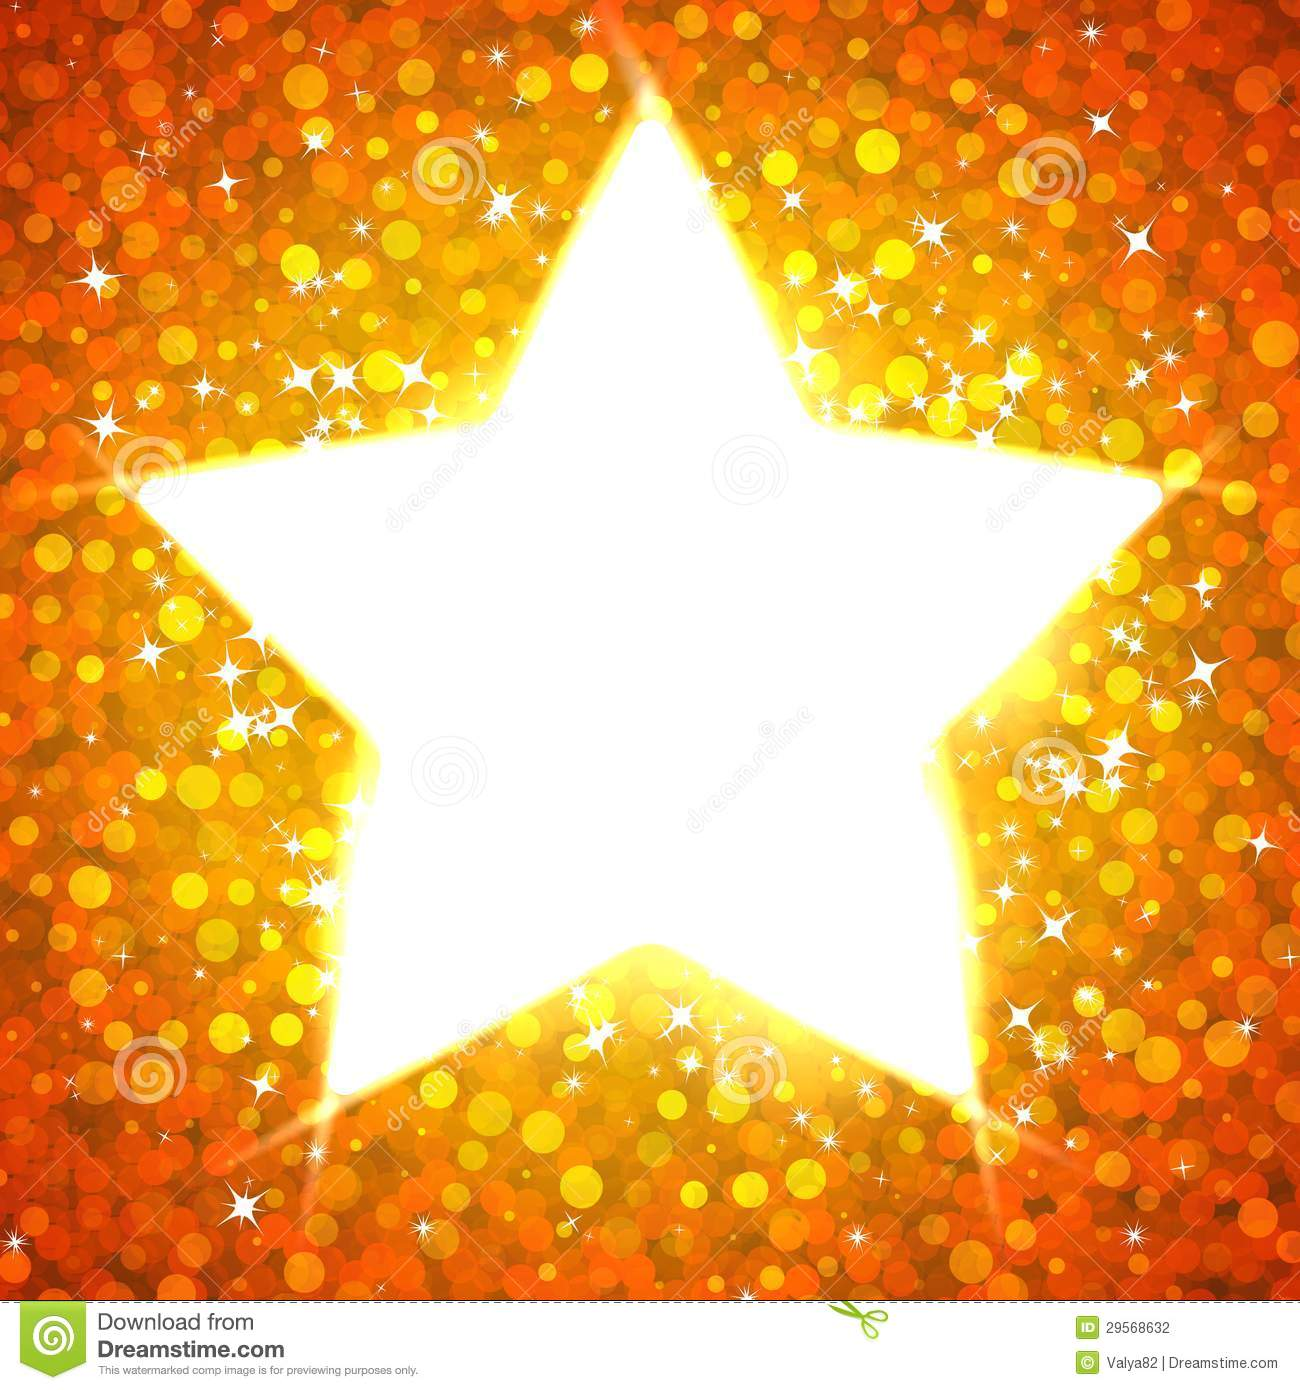 Gold Star Card Template Stock Photography - Image: 29568632